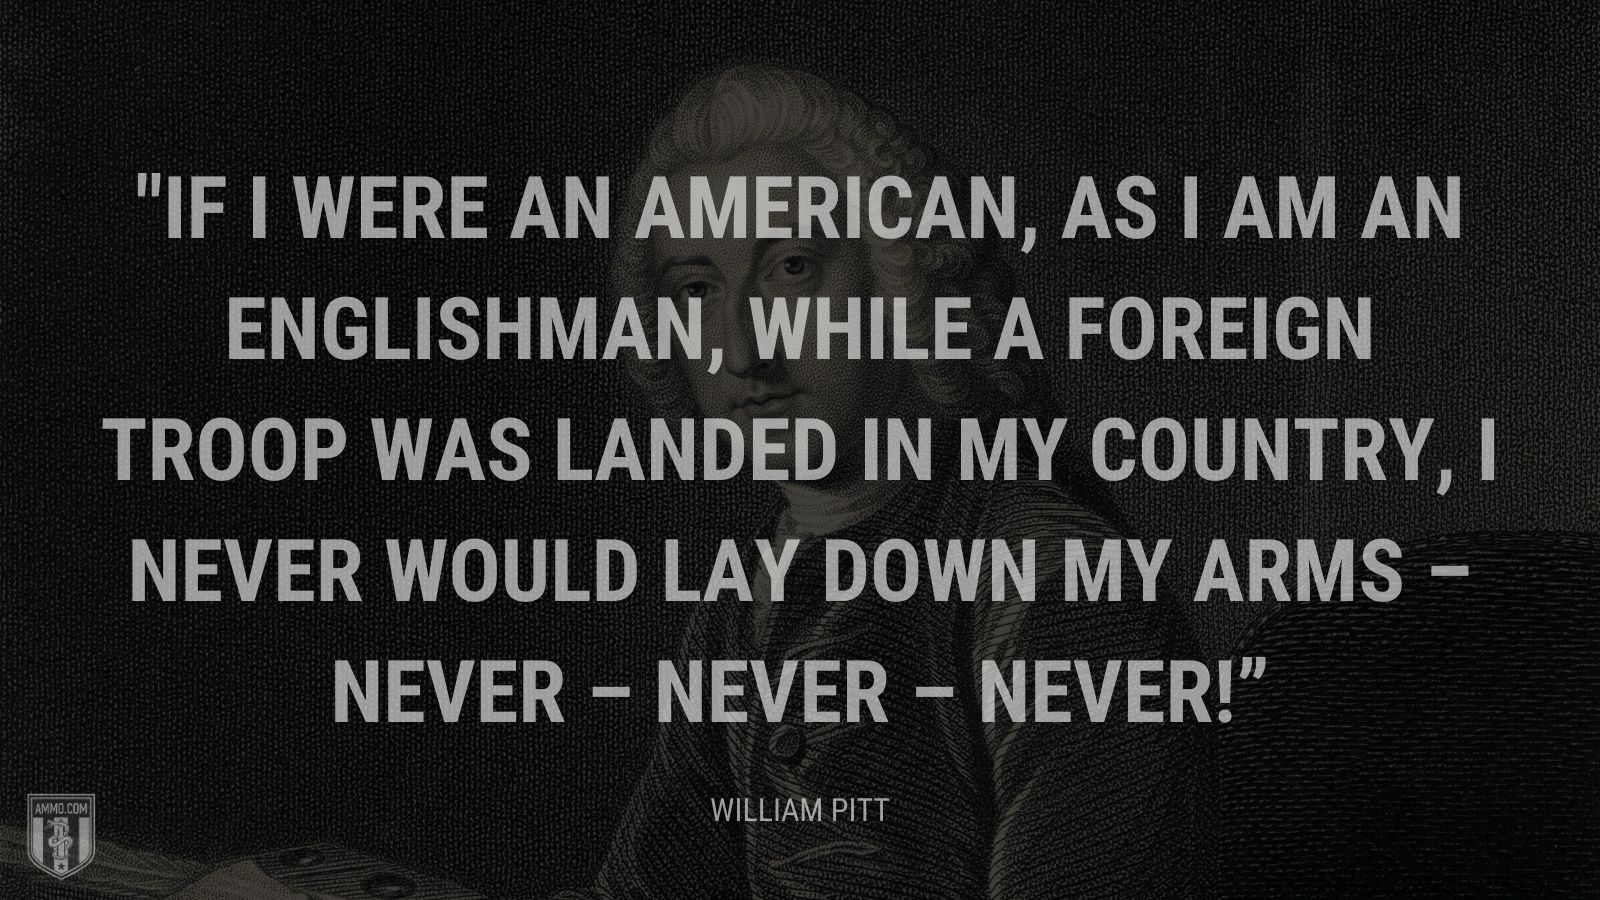 """If I were an American, as I am an Englishman, while a foreign troop was landed in my country, I never would lay down my arms – never – never – never!"" - William Pitt"